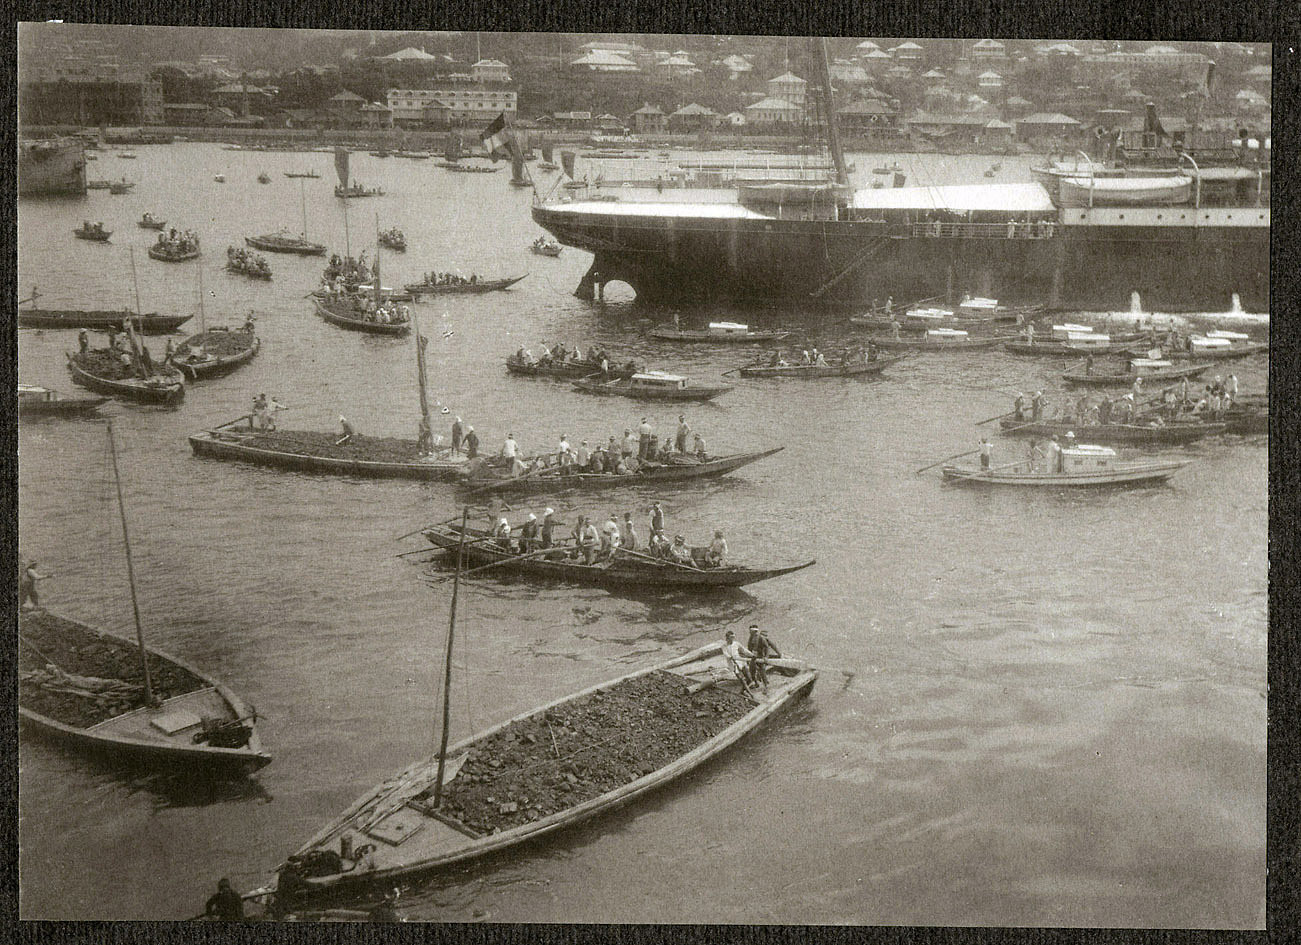 Small Japanese barges in harbor